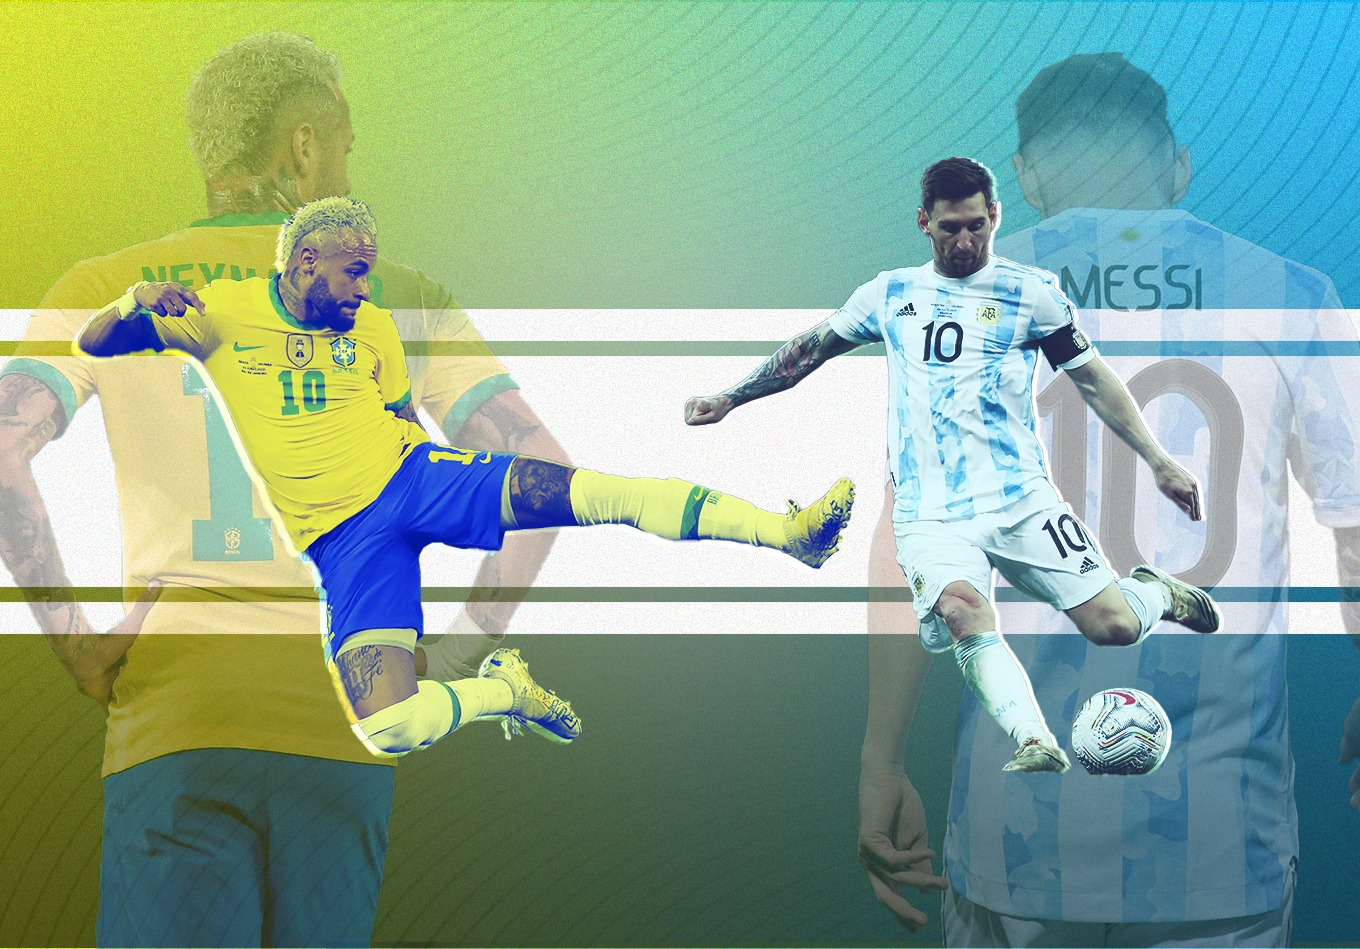 Argentina vs. Brazil is the Headline of This Story